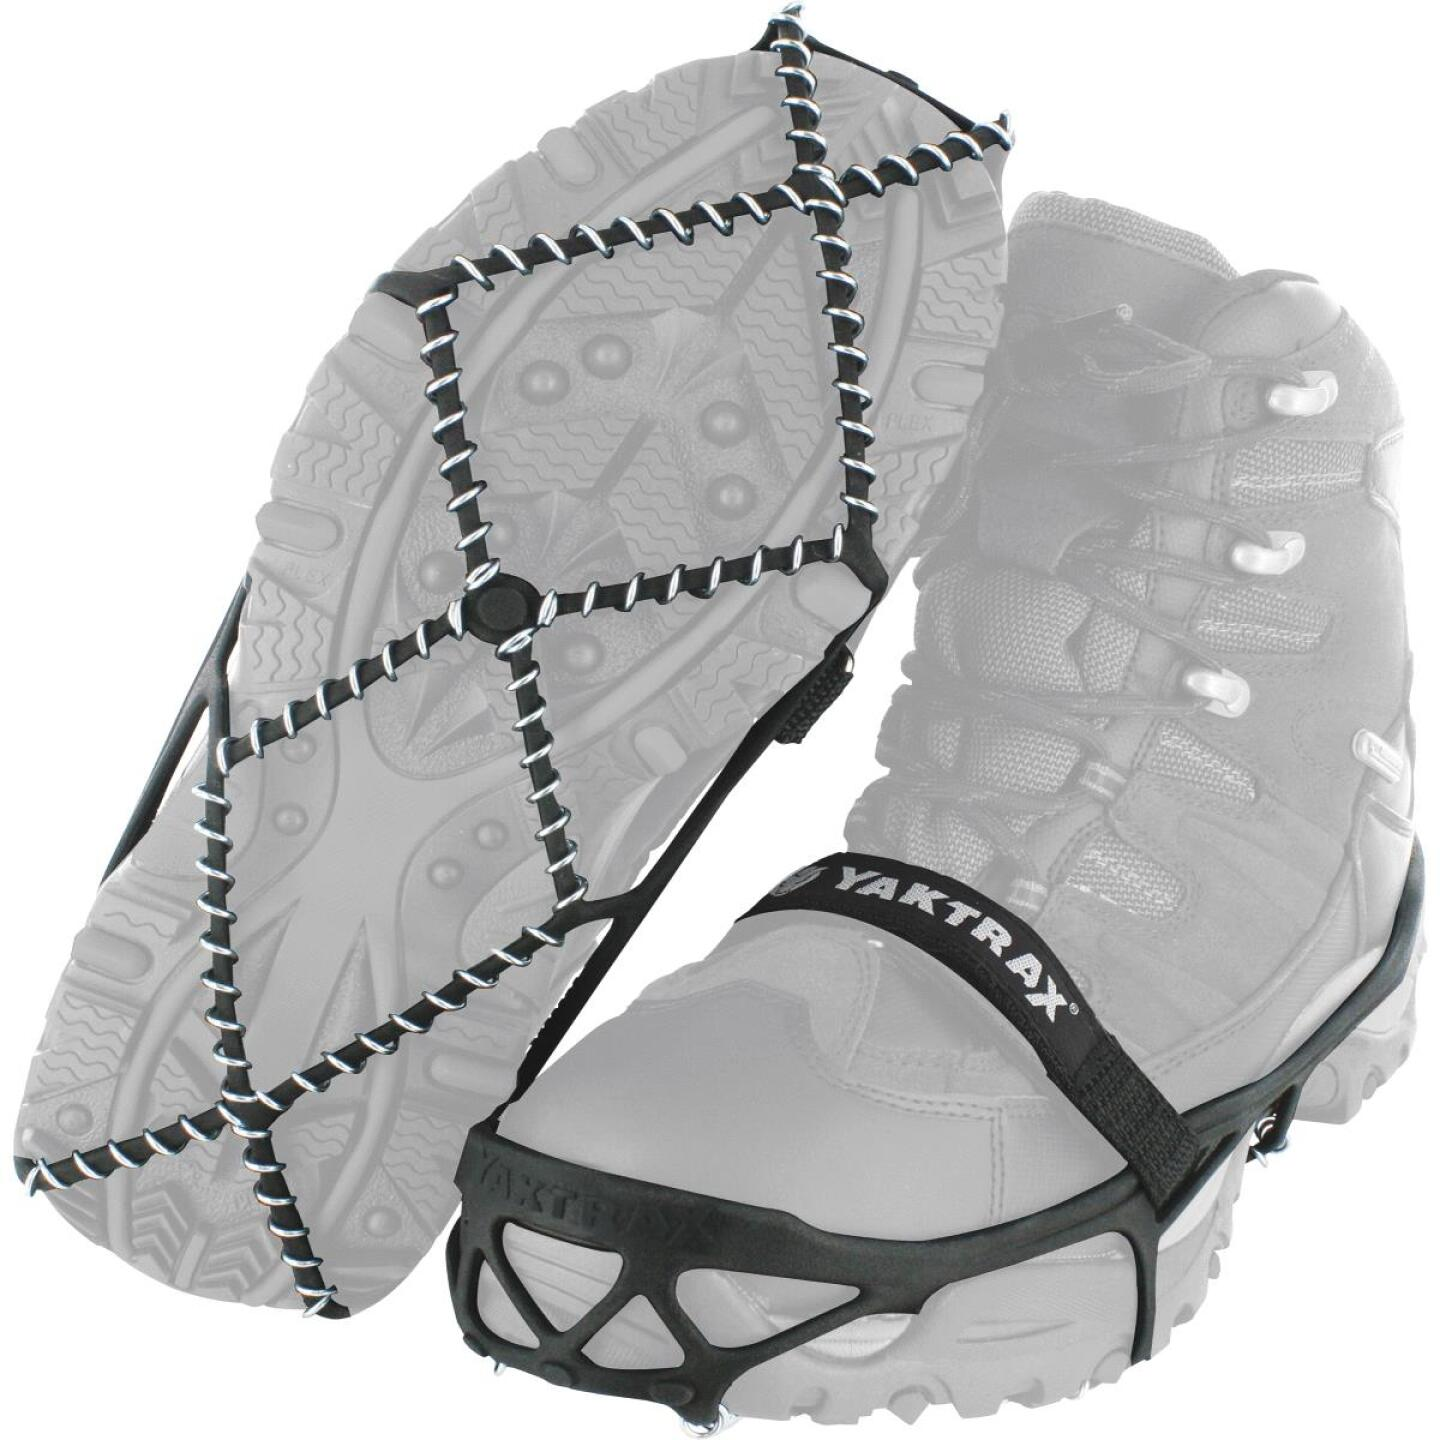 Yaktrax Pro Small Black Rubber Ice Cleat Image 1